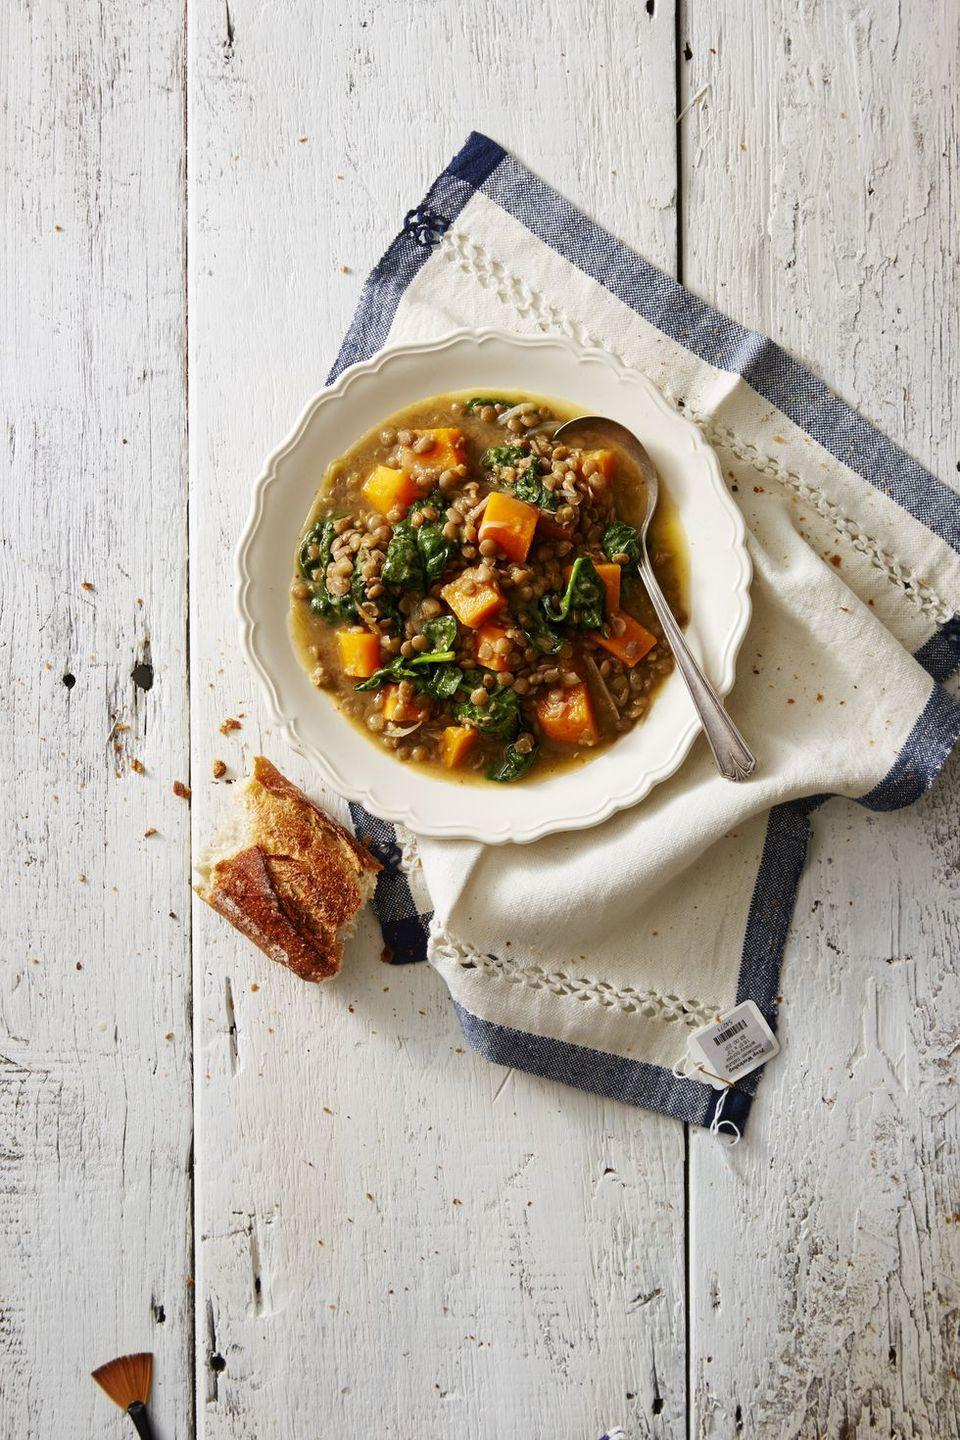 """<p>If you use a pressure cooker this recipe will finish a lot faster, but you'll still get a hearty meal with your slow cooker!</p><p><em><a href=""""https://www.goodhousekeeping.com/food-recipes/healthy/a42399/pressure-cooker-warming-winter-squash-lentil-stew-recipe/"""" rel=""""nofollow noopener"""" target=""""_blank"""" data-ylk=""""slk:Get the recipe for Pressure Cooker Winter Squash and Lentil Stew »"""" class=""""link rapid-noclick-resp"""">Get the recipe for Pressure Cooker Winter Squash and Lentil Stew »</a></em></p><p><strong>RELATED:</strong> <a href=""""https://www.goodhousekeeping.com/food-recipes/easy/g26102687/instant-pot-soups/"""" rel=""""nofollow noopener"""" target=""""_blank"""" data-ylk=""""slk:20 Instant Pot Soups That Are Basically Comfort in a Bowl"""" class=""""link rapid-noclick-resp"""">20 Instant Pot Soups That Are Basically Comfort in a Bowl</a></p>"""